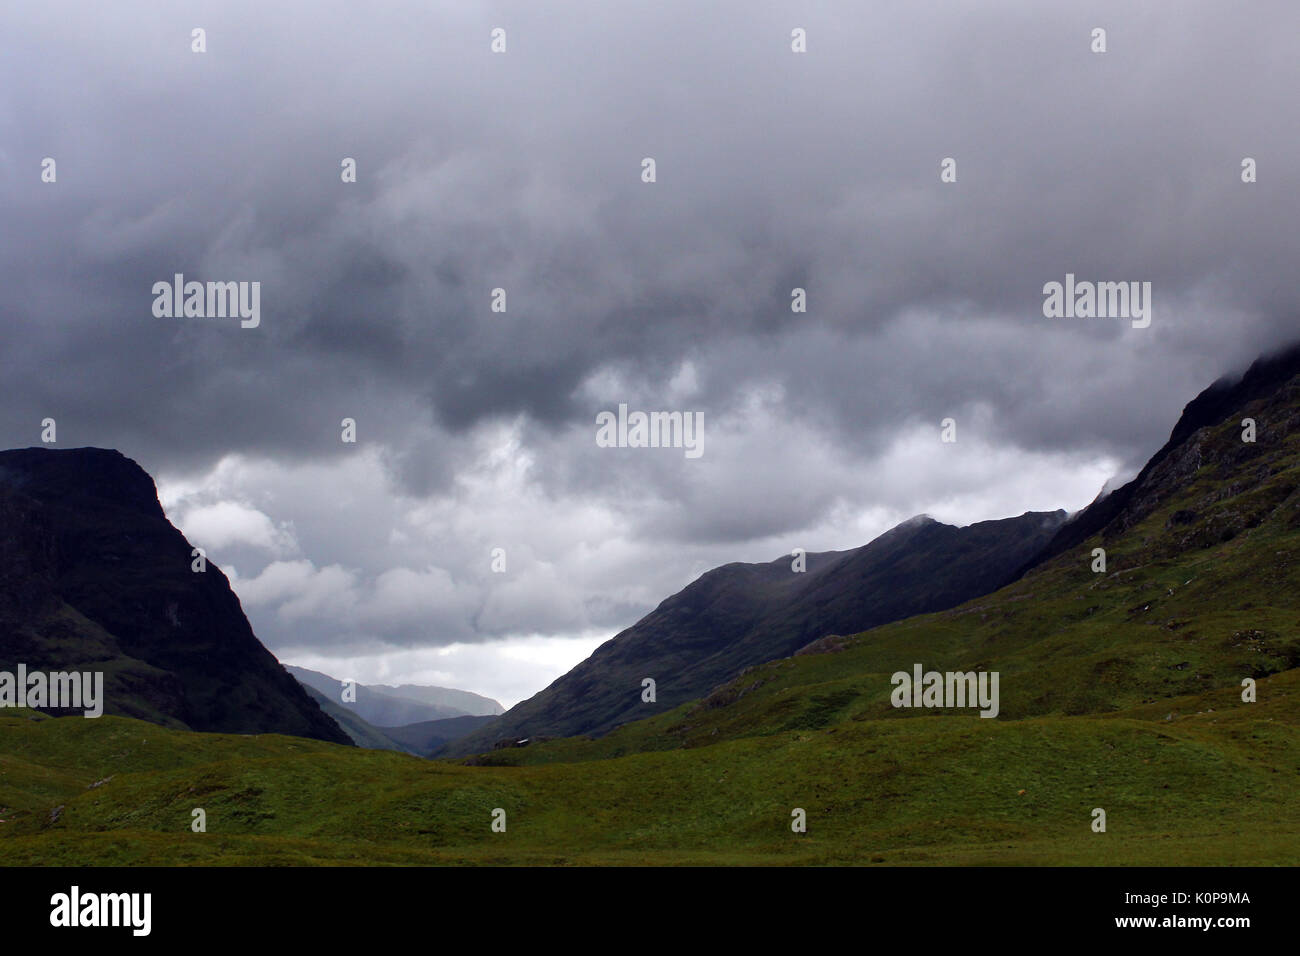 scenery in the scottish highlands - Stock Image